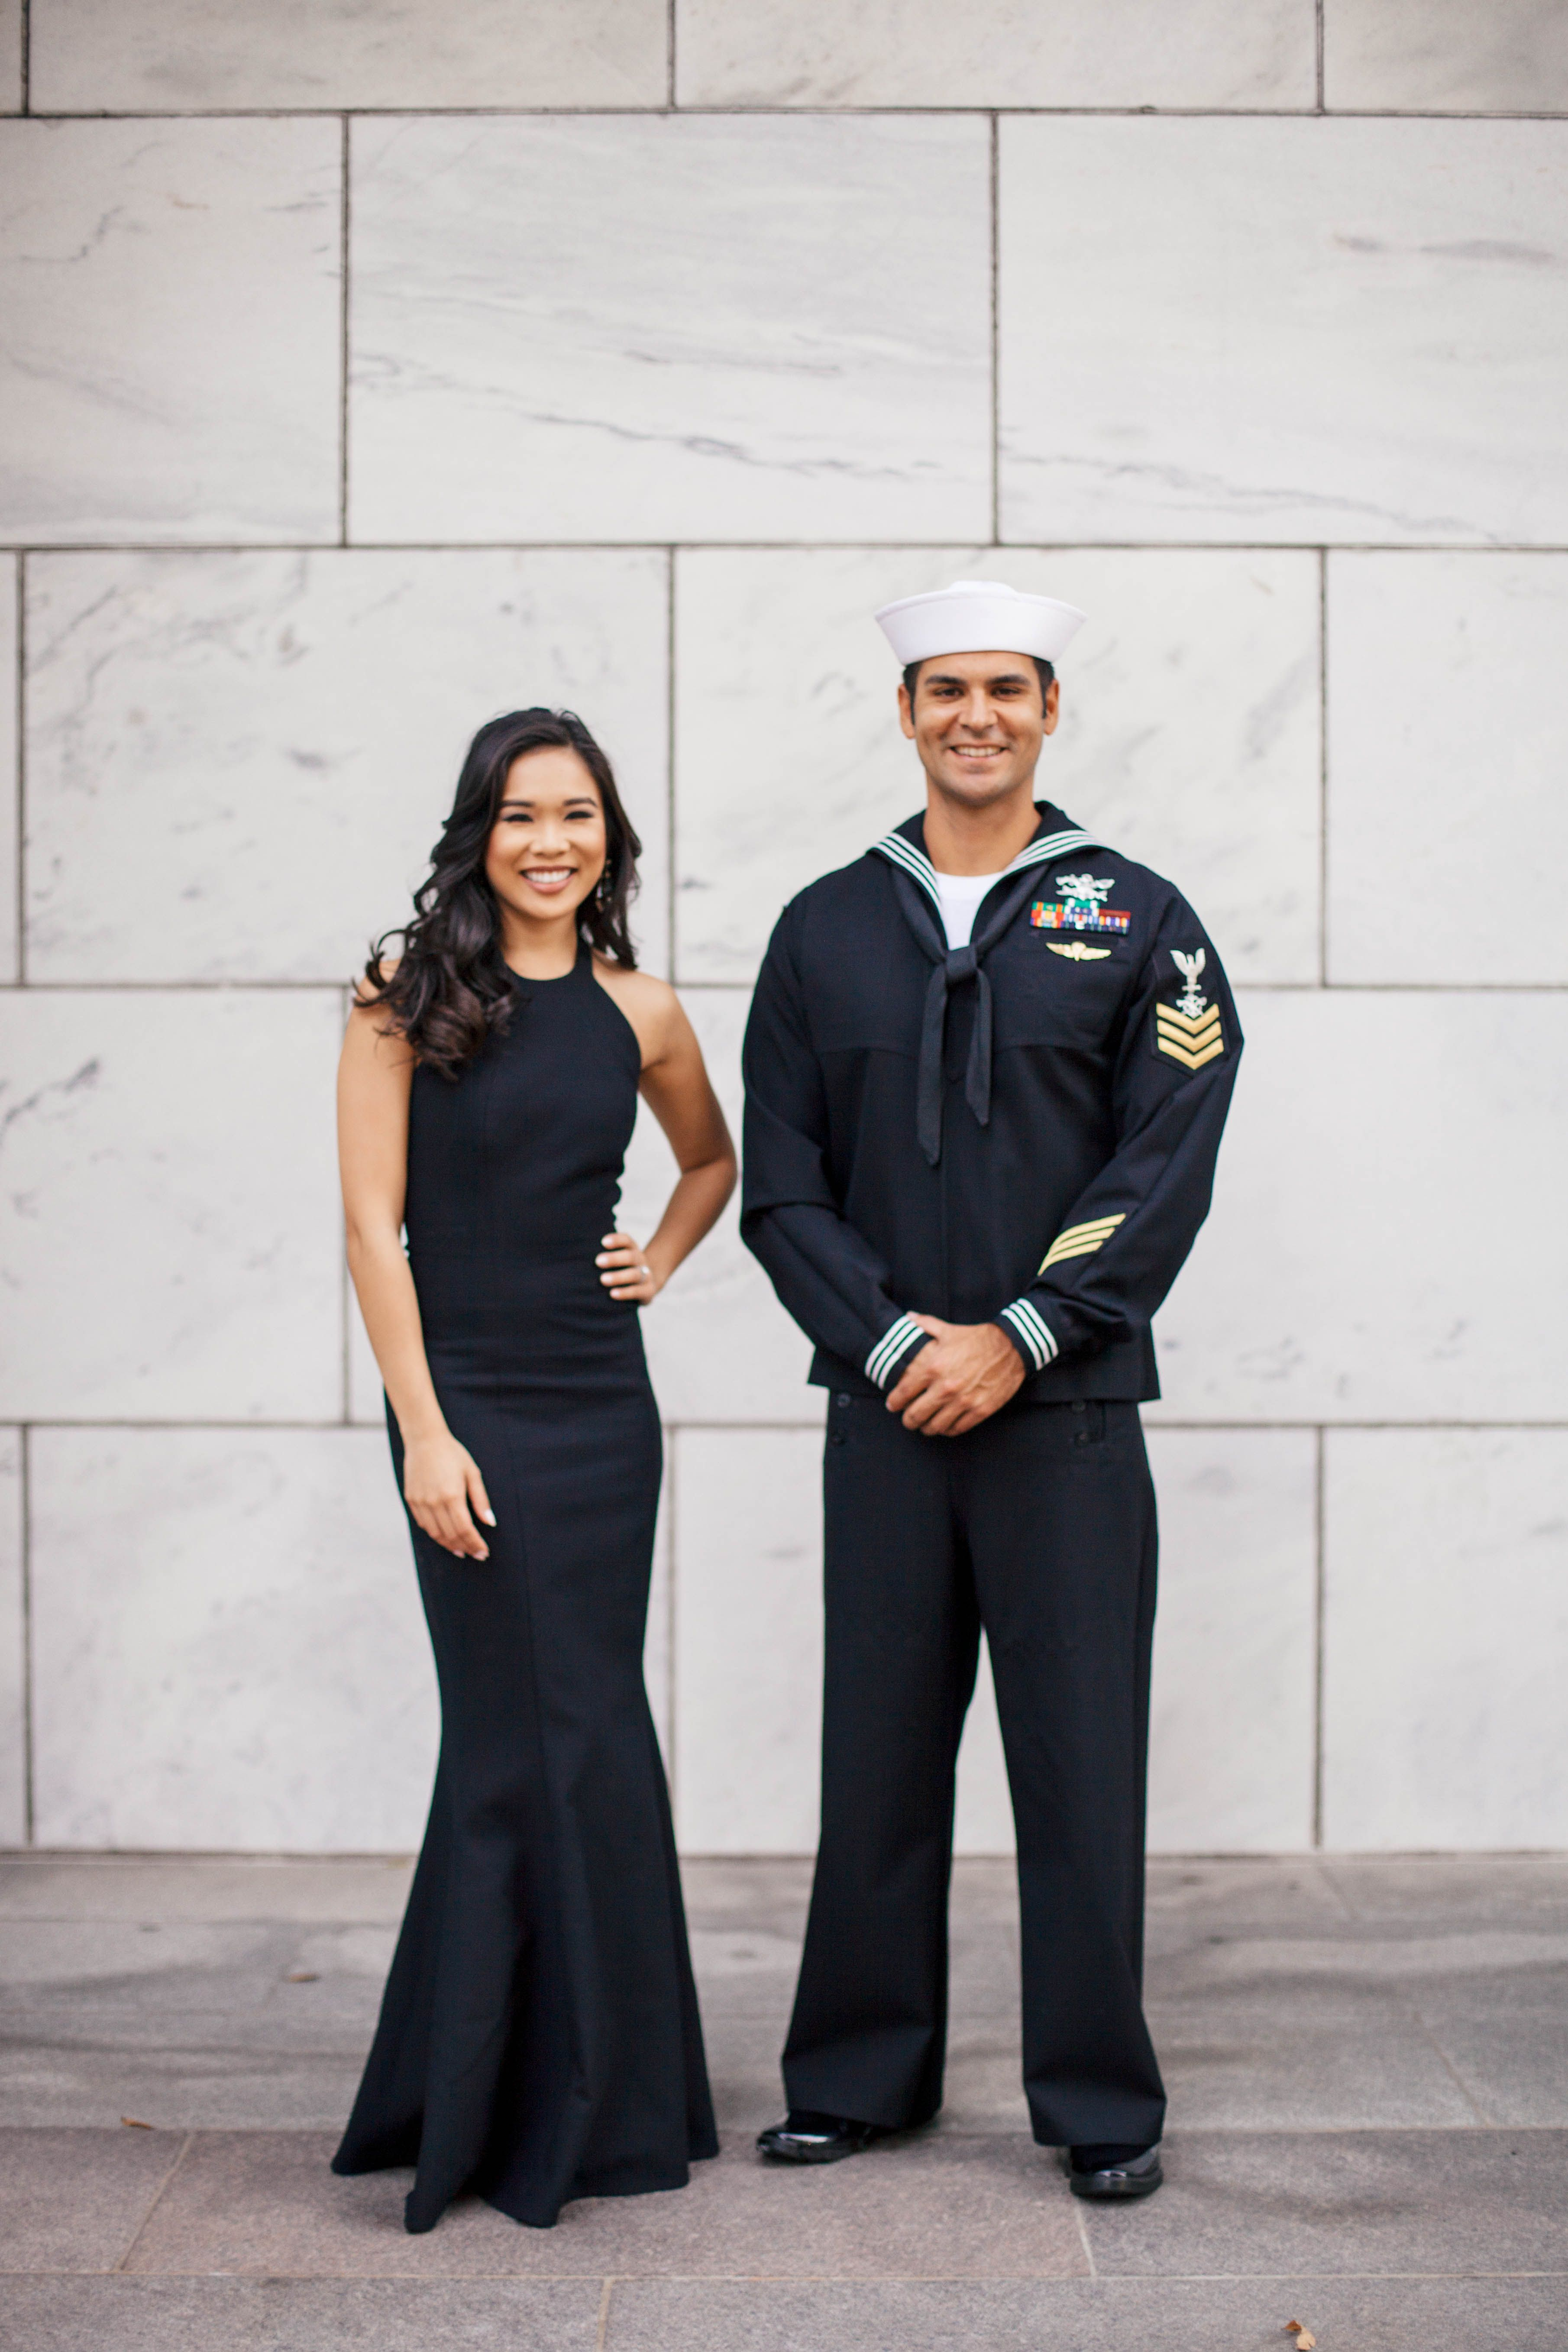 Military Ball What To Wear Got Invited Gowns Us Navy Army Airforce Birthday Gala Dinner Uniform S Military Ball Dresses Marines Military Ball Marine Corps Ball